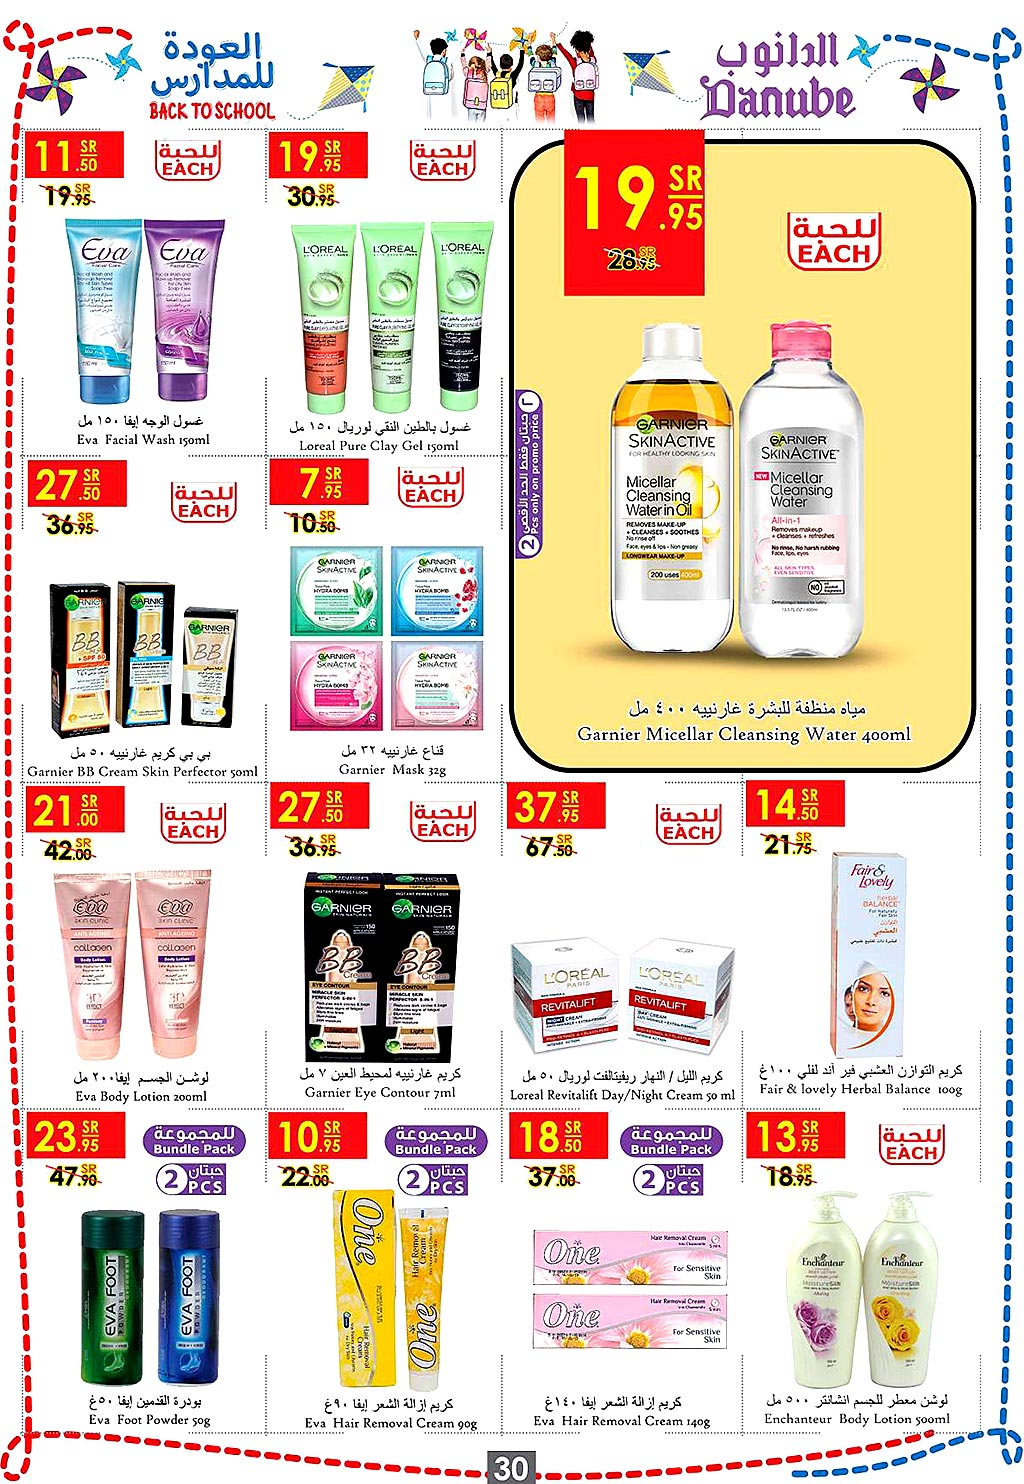 danube offers from 7aug to 21aug 2019 page number 29 عروض الدانوب من 7 أغسطس حتى 21 أغسطس 2019 صفحة رقم 29